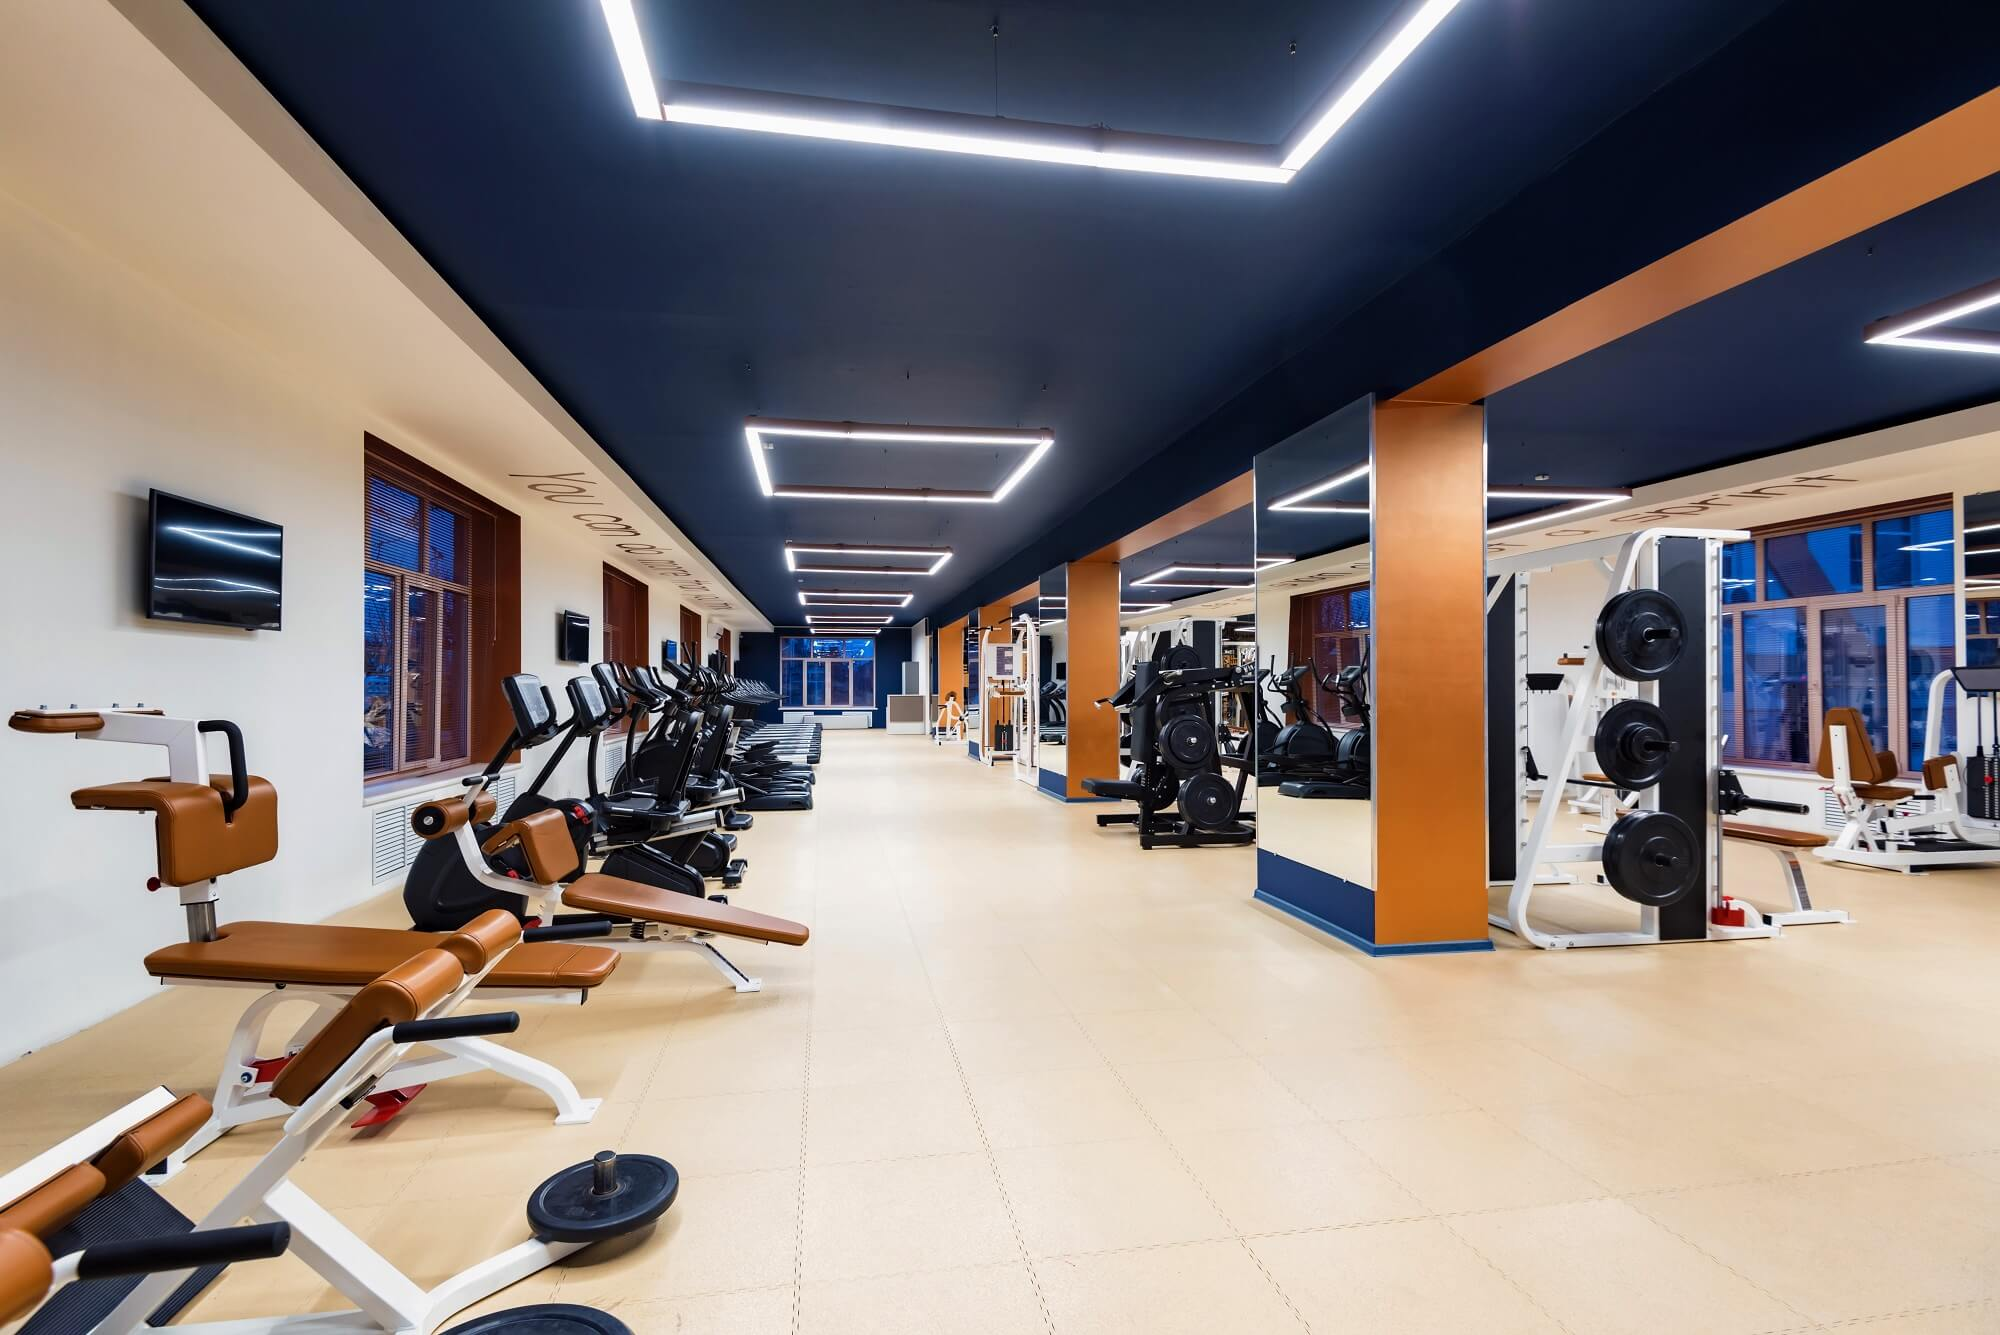 Interior with several modern fitness machines in gym